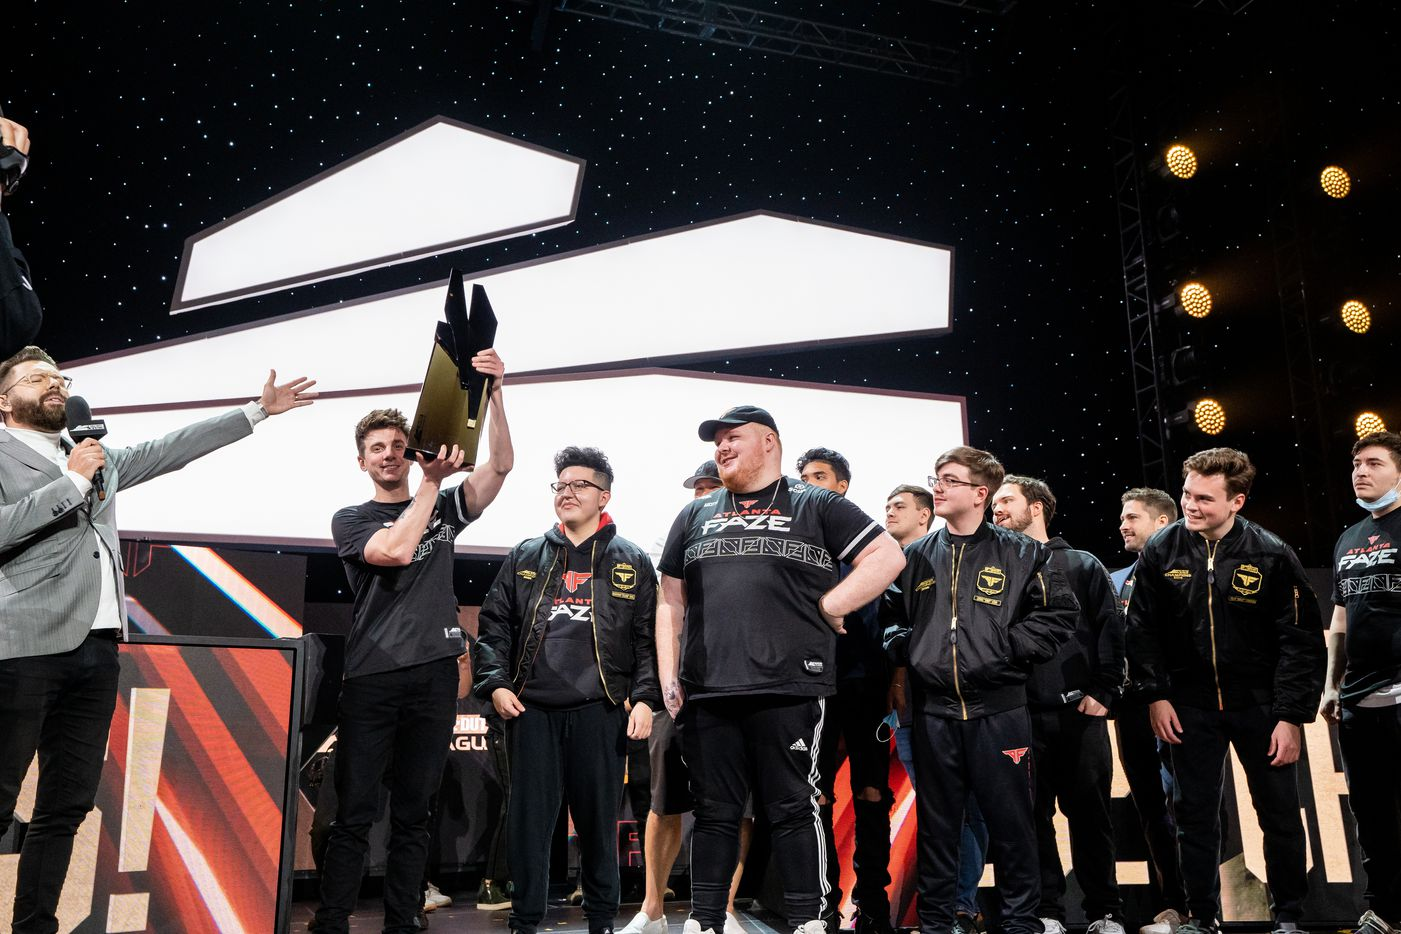 The Atlanta FaZe hold the Call of Duty league championship trophy at the Galen Center on Sunday, August 22, 2021 in Los Angeles, California. The Atlanta FaZe beat the Toronto Ultra 5 - 3. (Justin L. Stewart/Special Contributor)